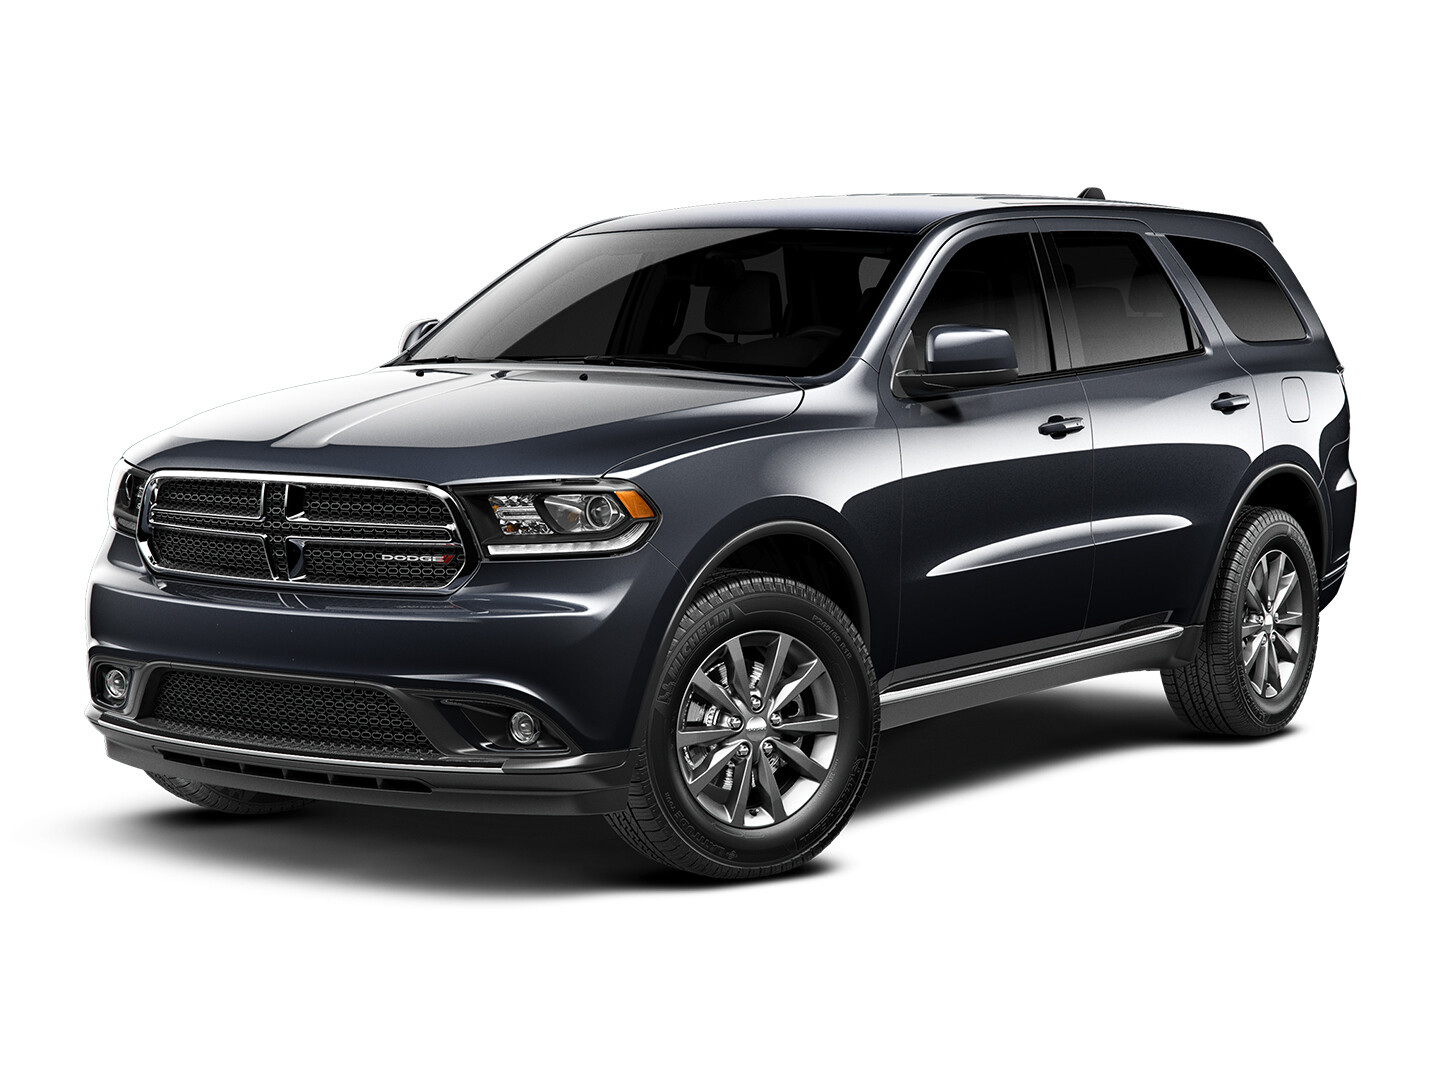 Dodge Durango: Fully CG Vehicle